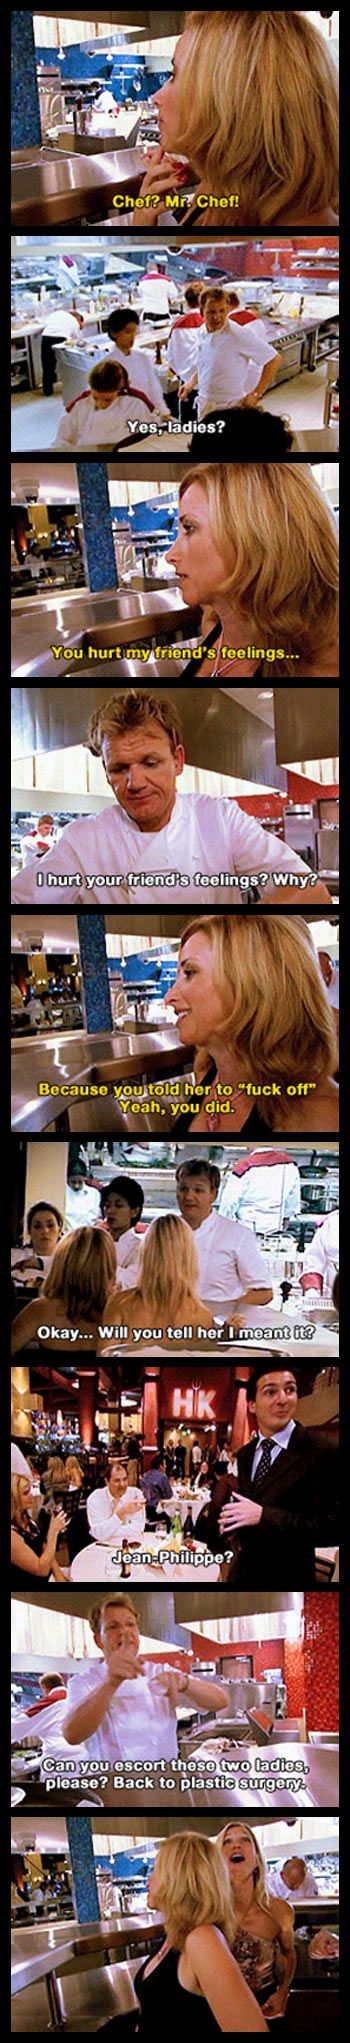 Don't mess with Chef Ramsay… especially when he's mad and in the middle of a dinner service